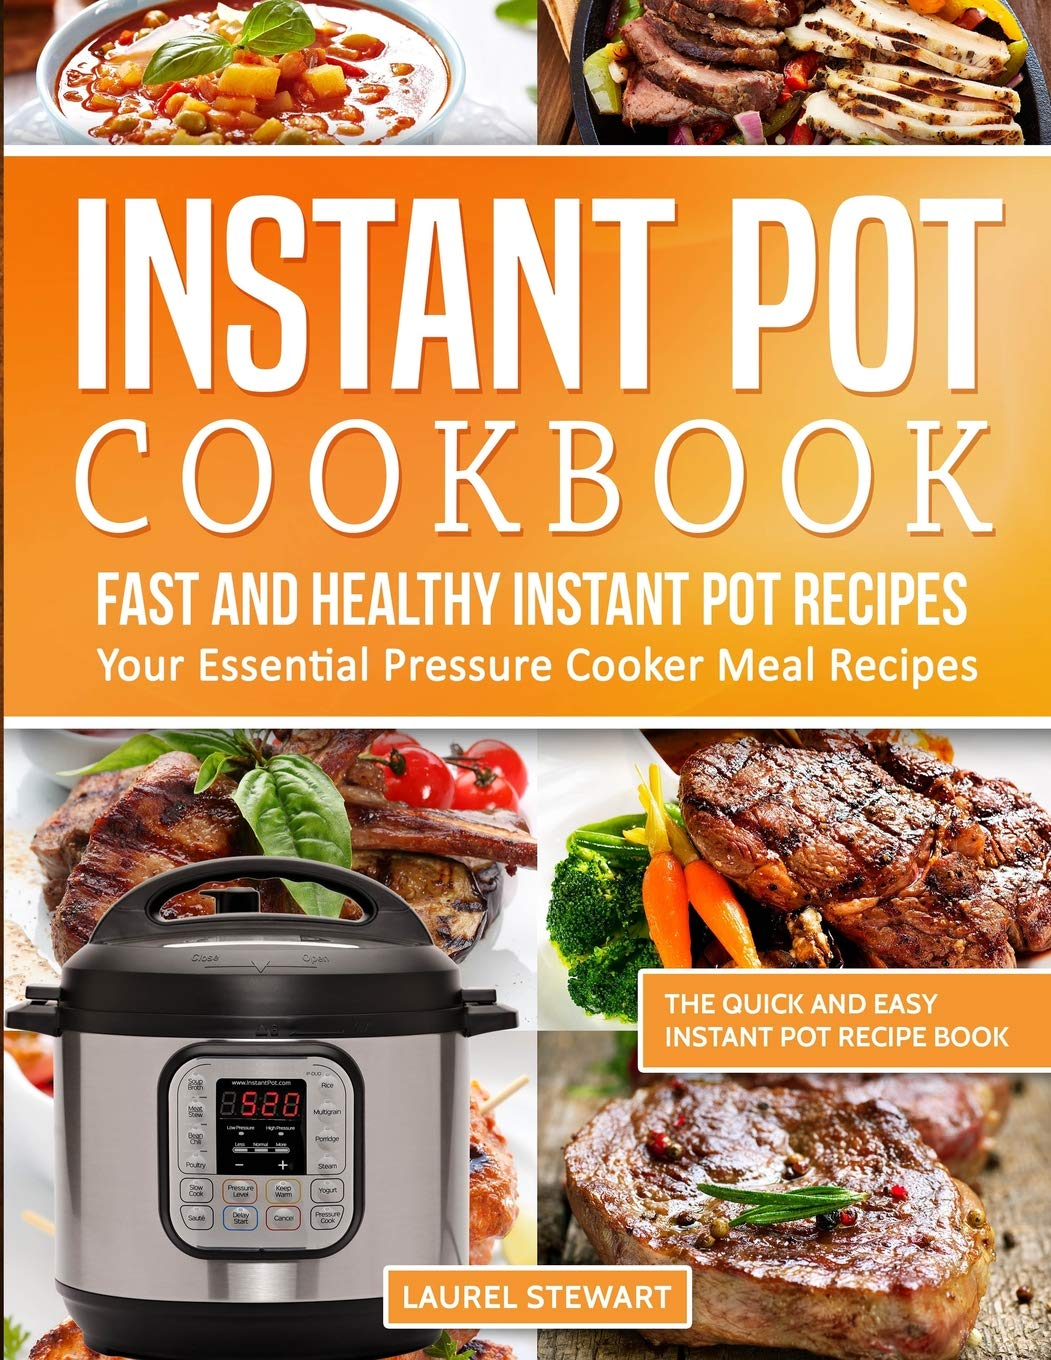 Instant Pot Cookbook Fast And Healthy Instant Pot Recipes Your